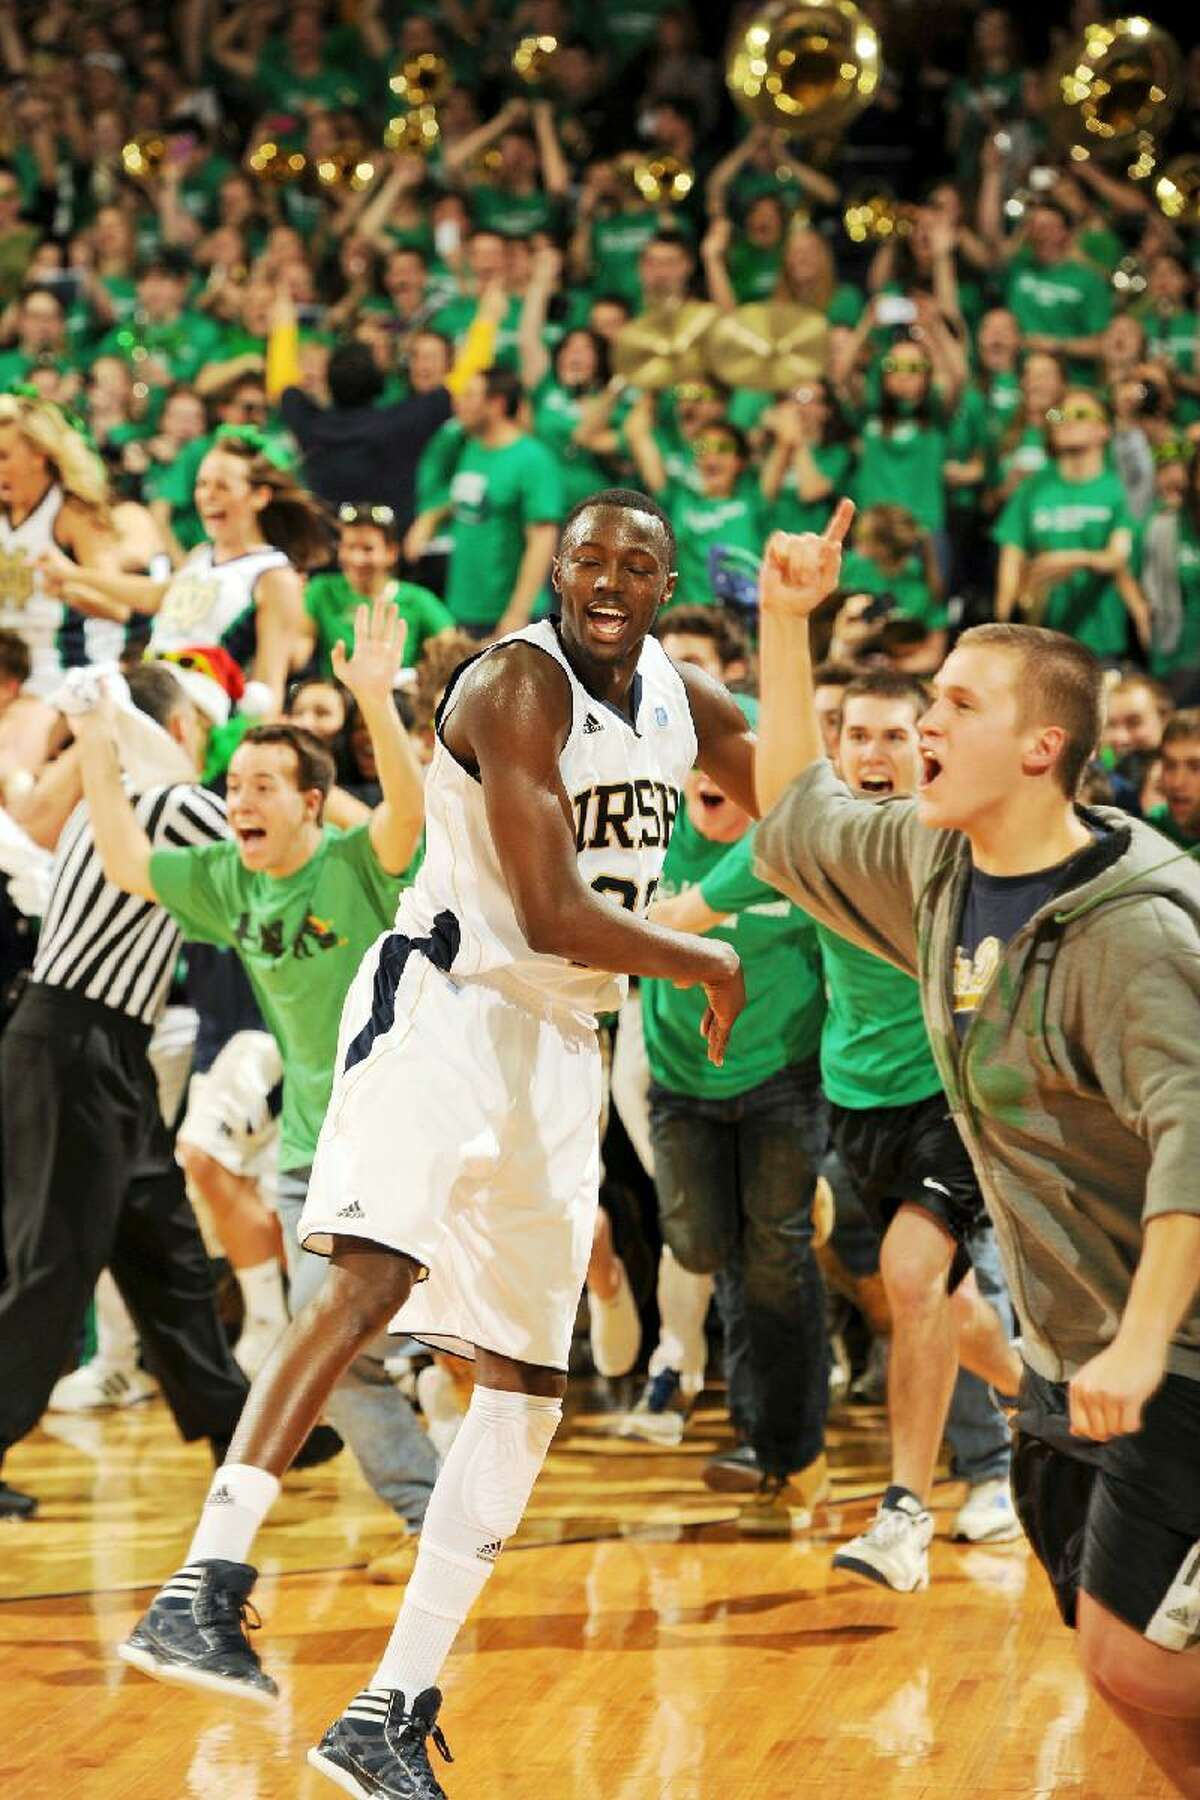 ASSOCIATED PRESS Notre Dame guard Jerian Grant throws the ball into the stands as fans rush the court following Notre Dame's 67-58 victory over Syracuse Saturday in South Bend, Ind.